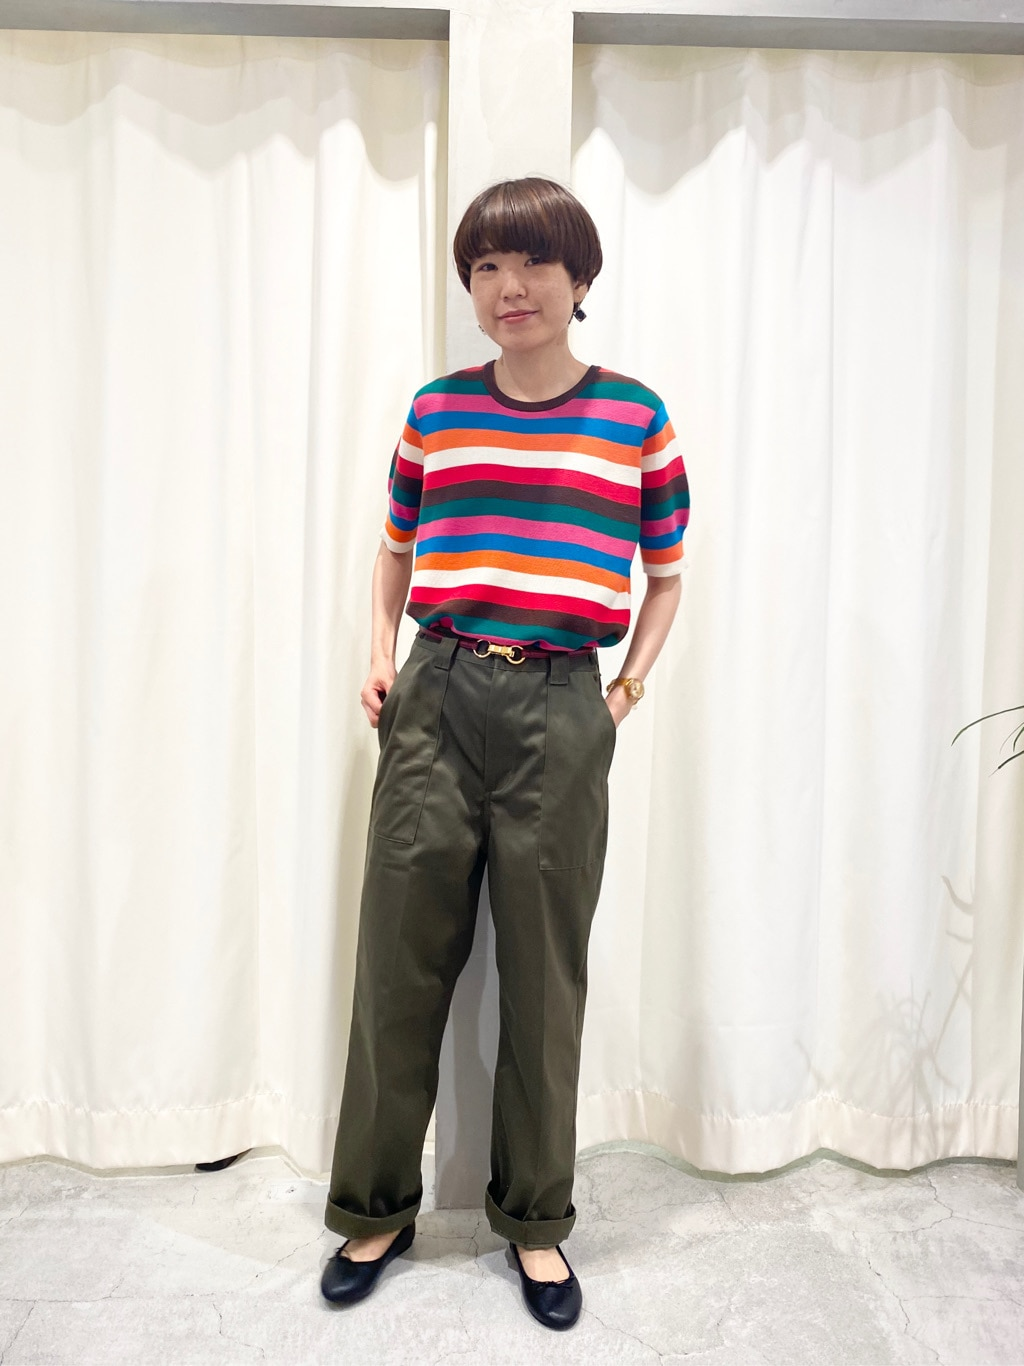 AMB SHOP PAR ICI CHILD WOMAN , PAR ICI ルミネ池袋 身長:161cm 2020.07.09